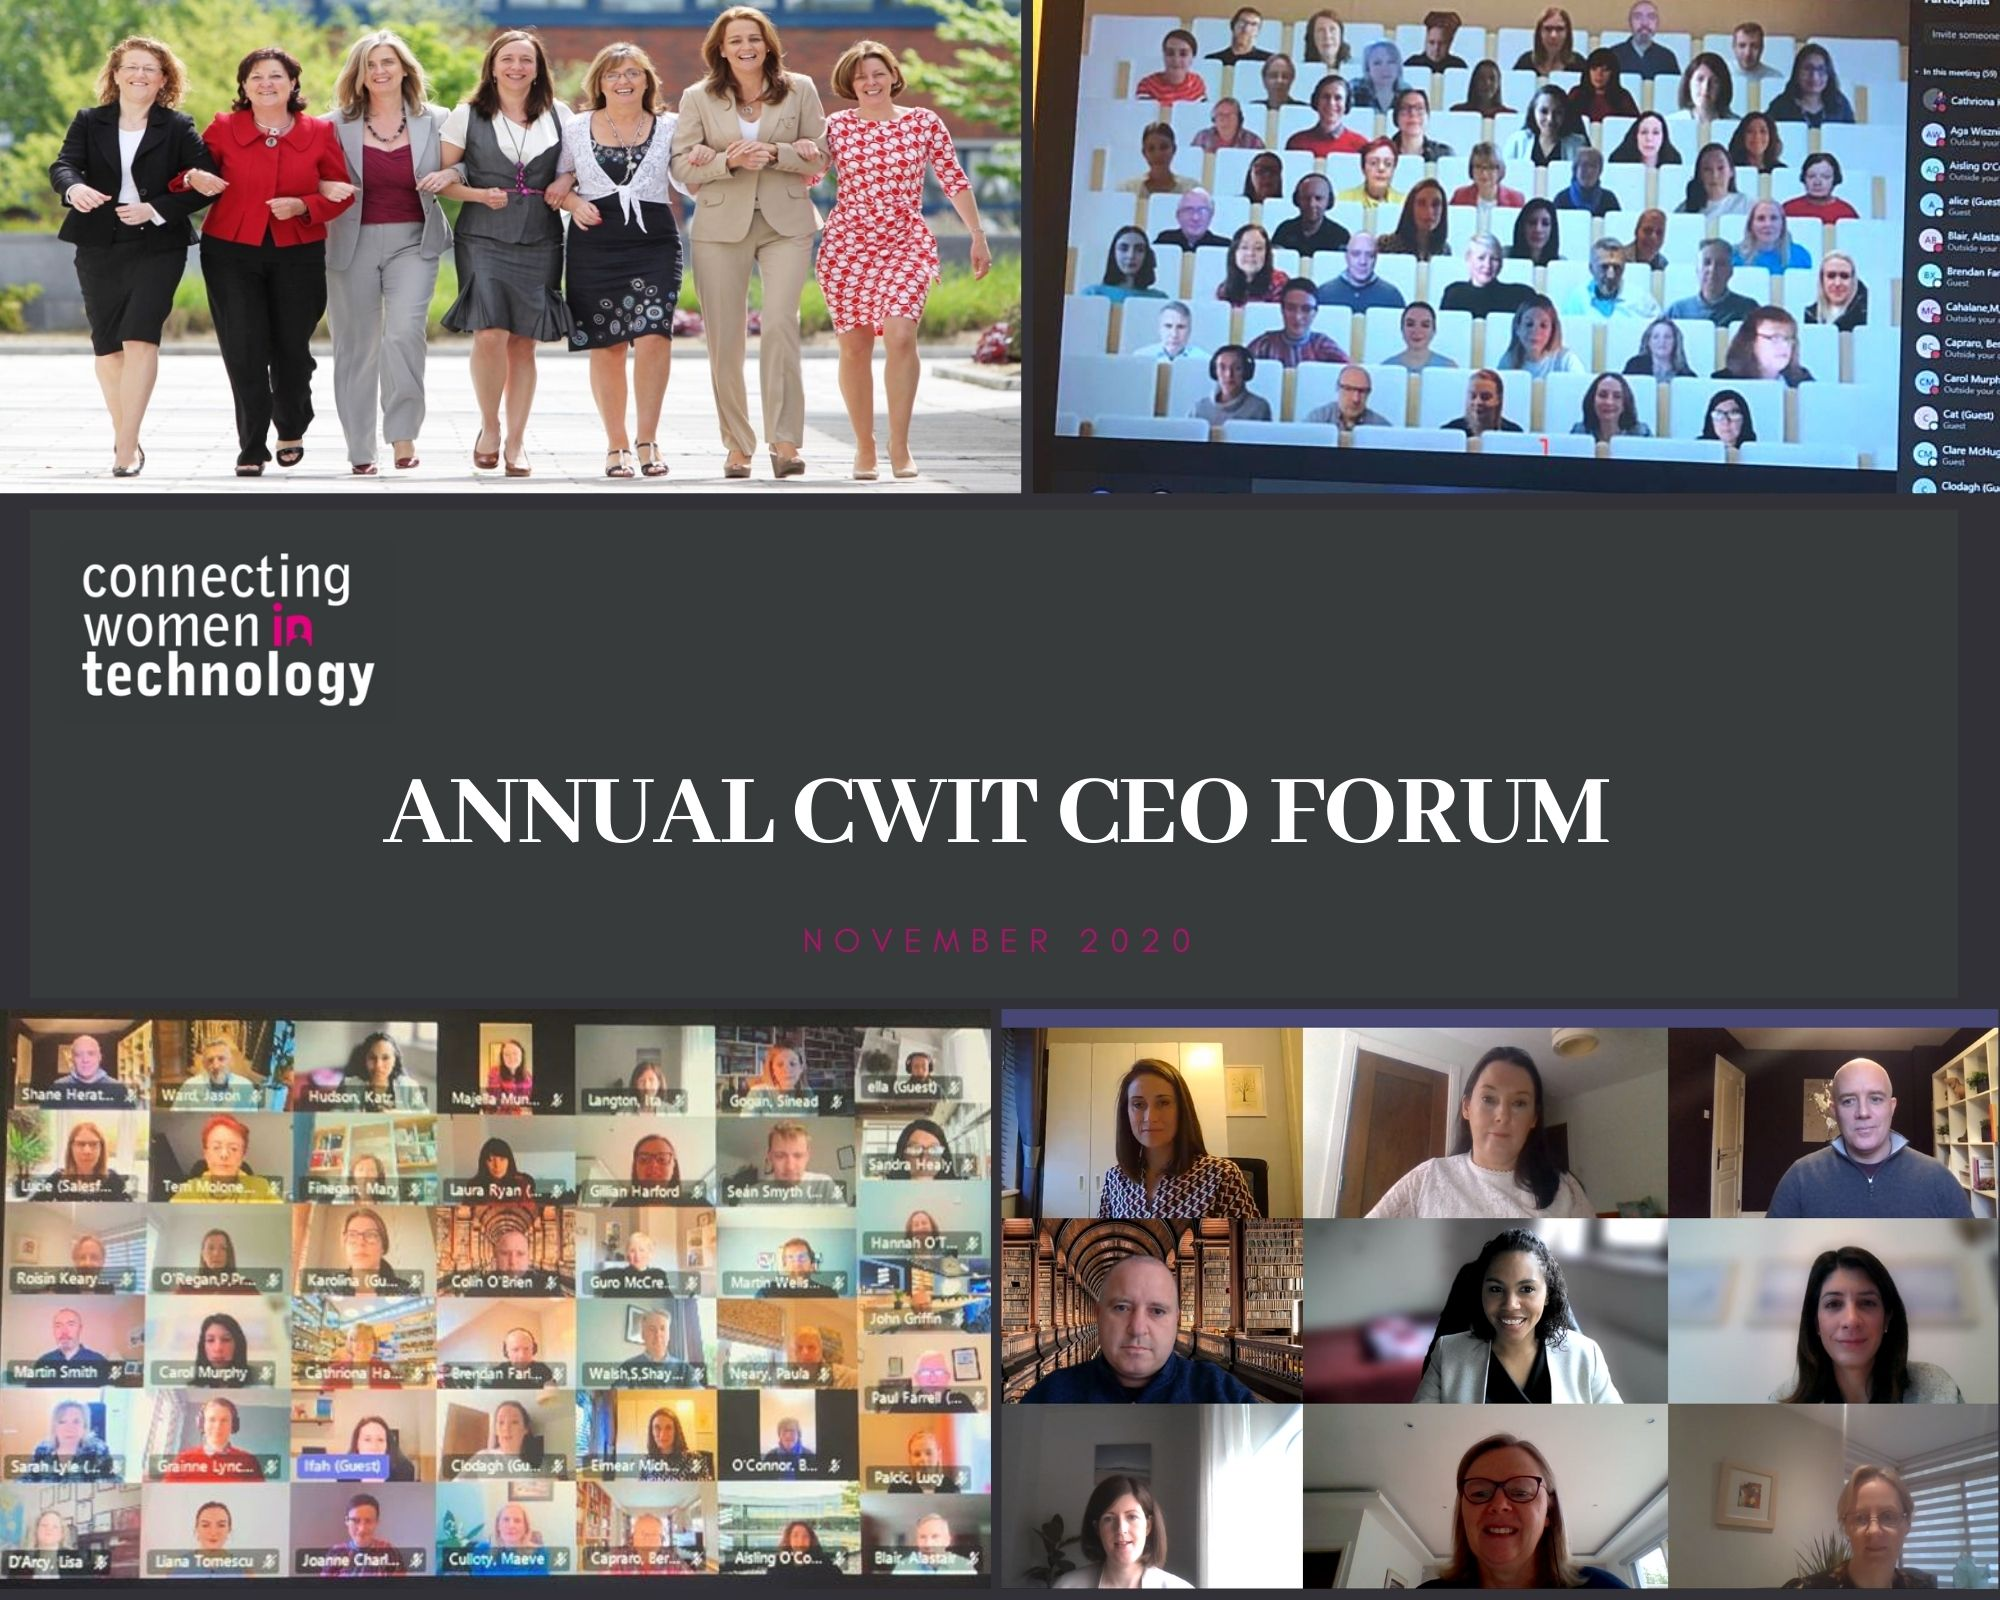 Diversity and Inclusion remains key focus for Ireland's Top Tech Companies as progress discussed at Annual CWiT CEO Forum